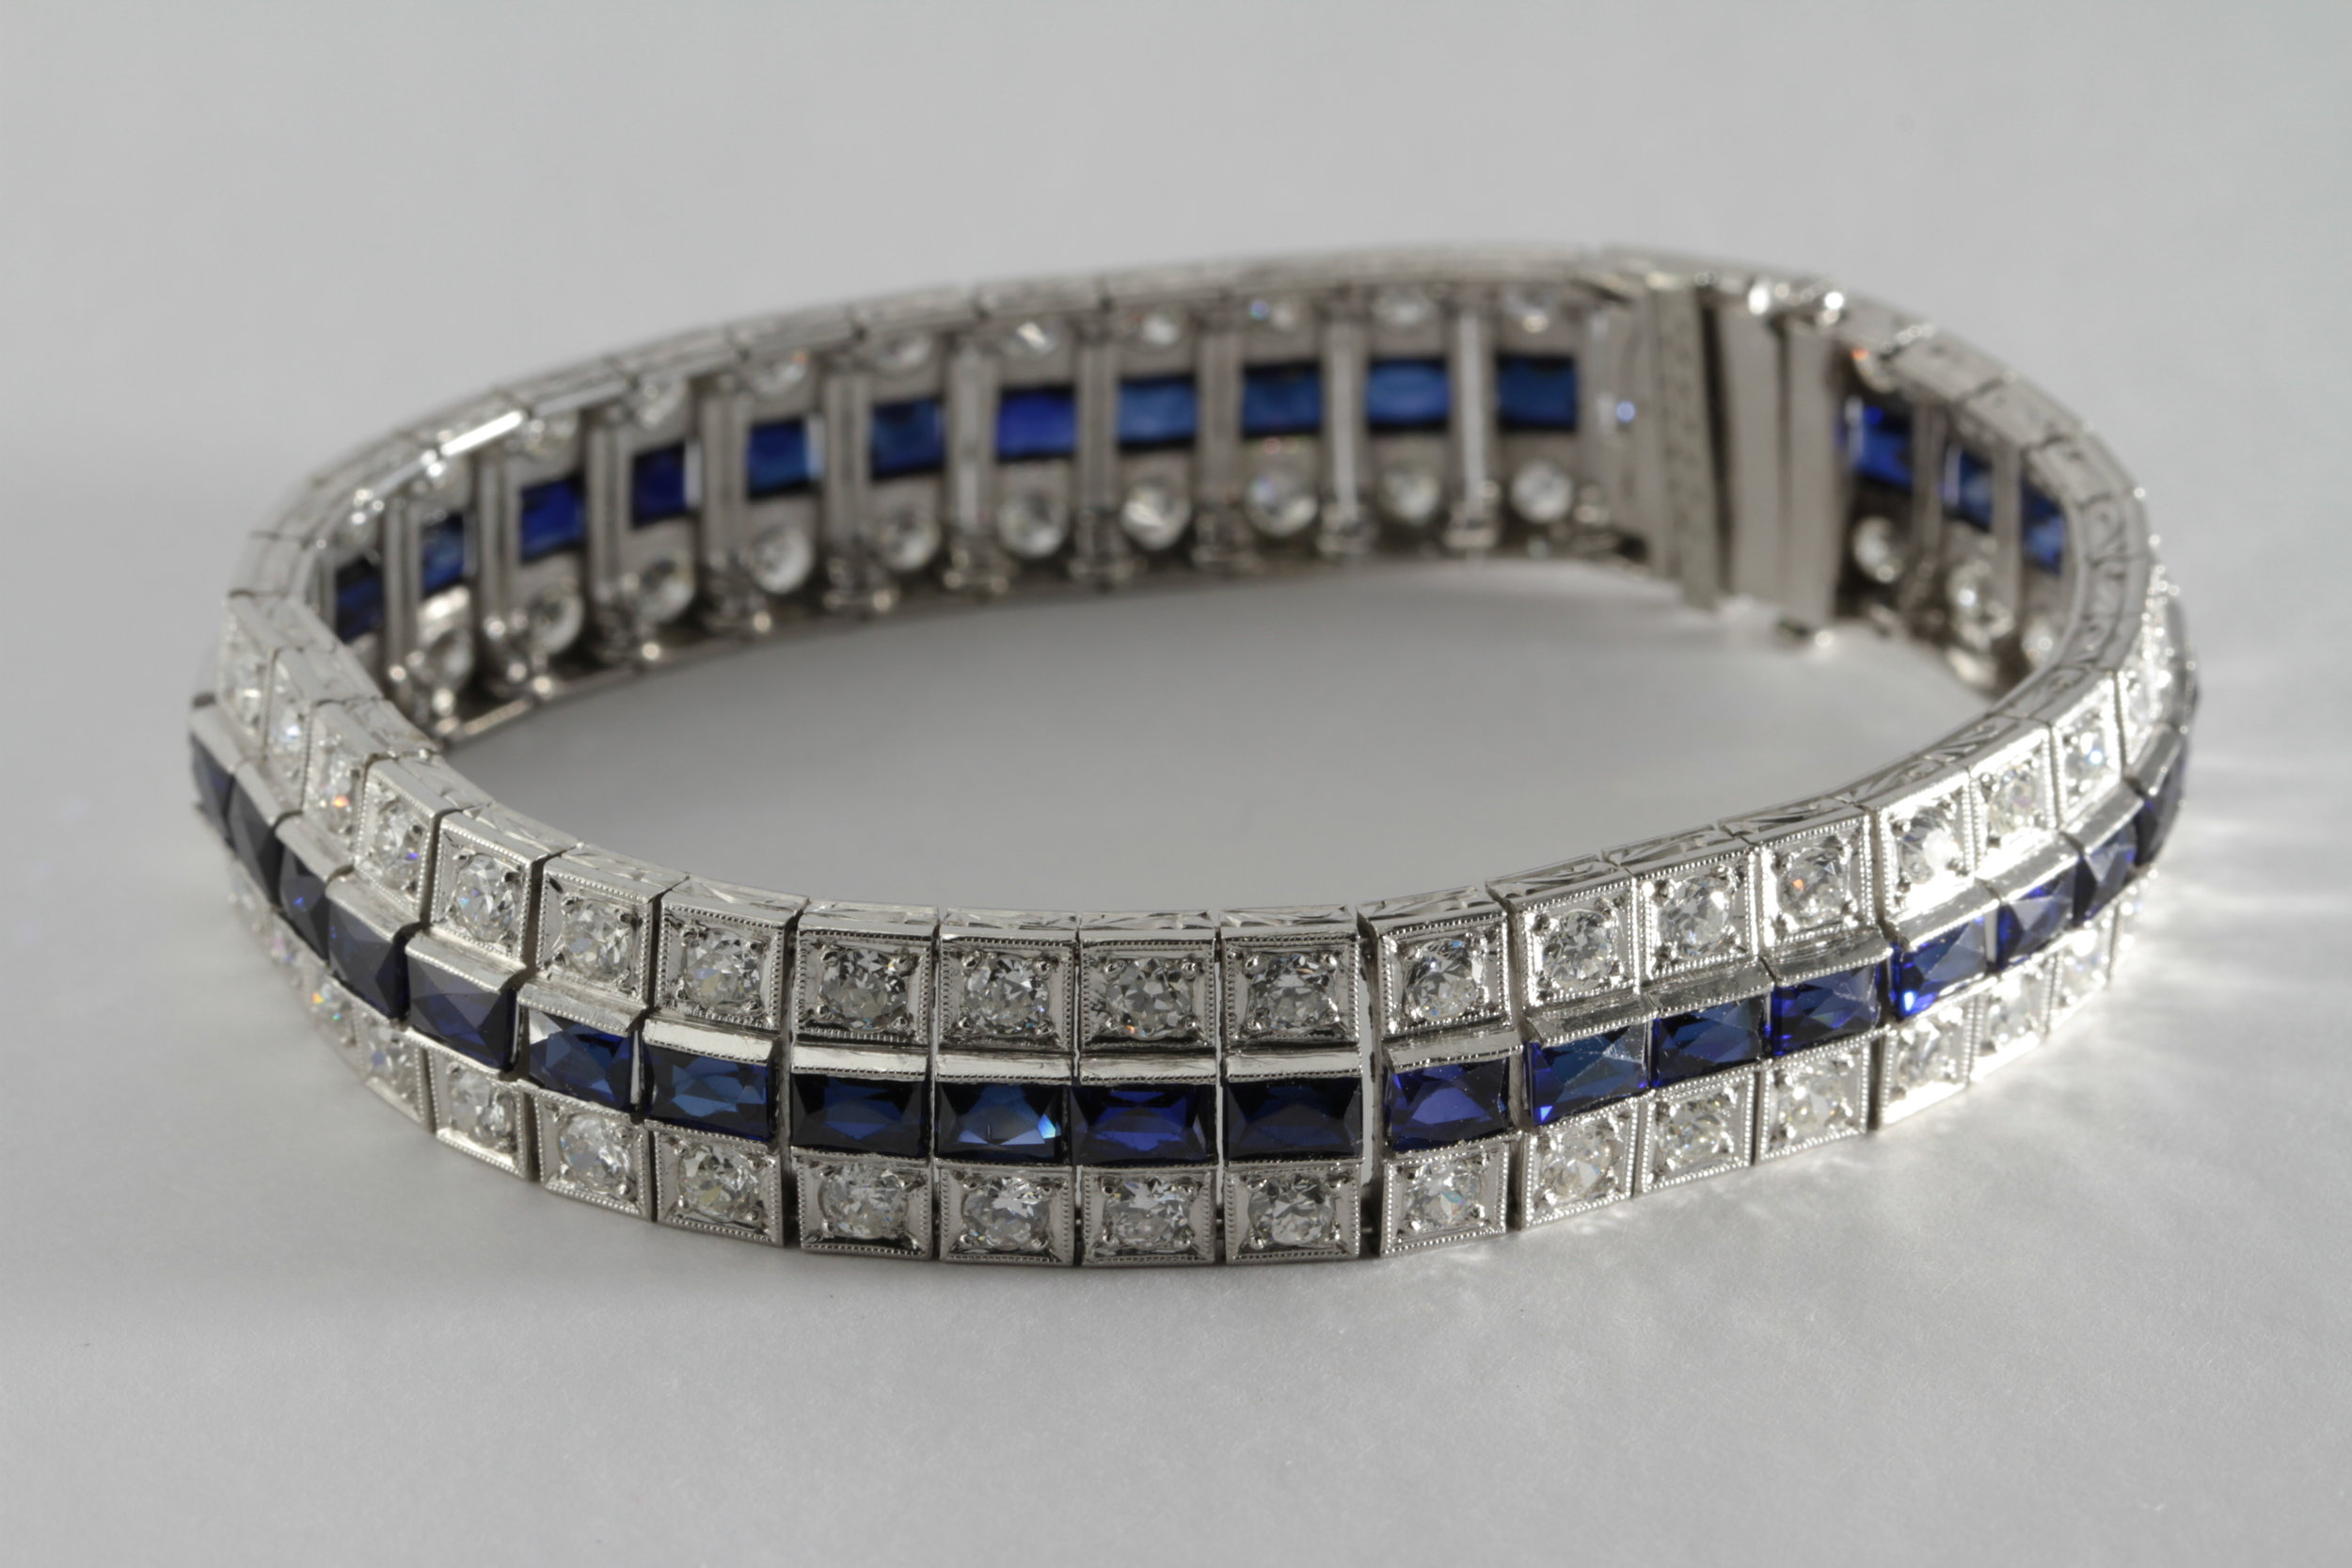 art deco french cut sapphire and 8 carats of diamond in platinum